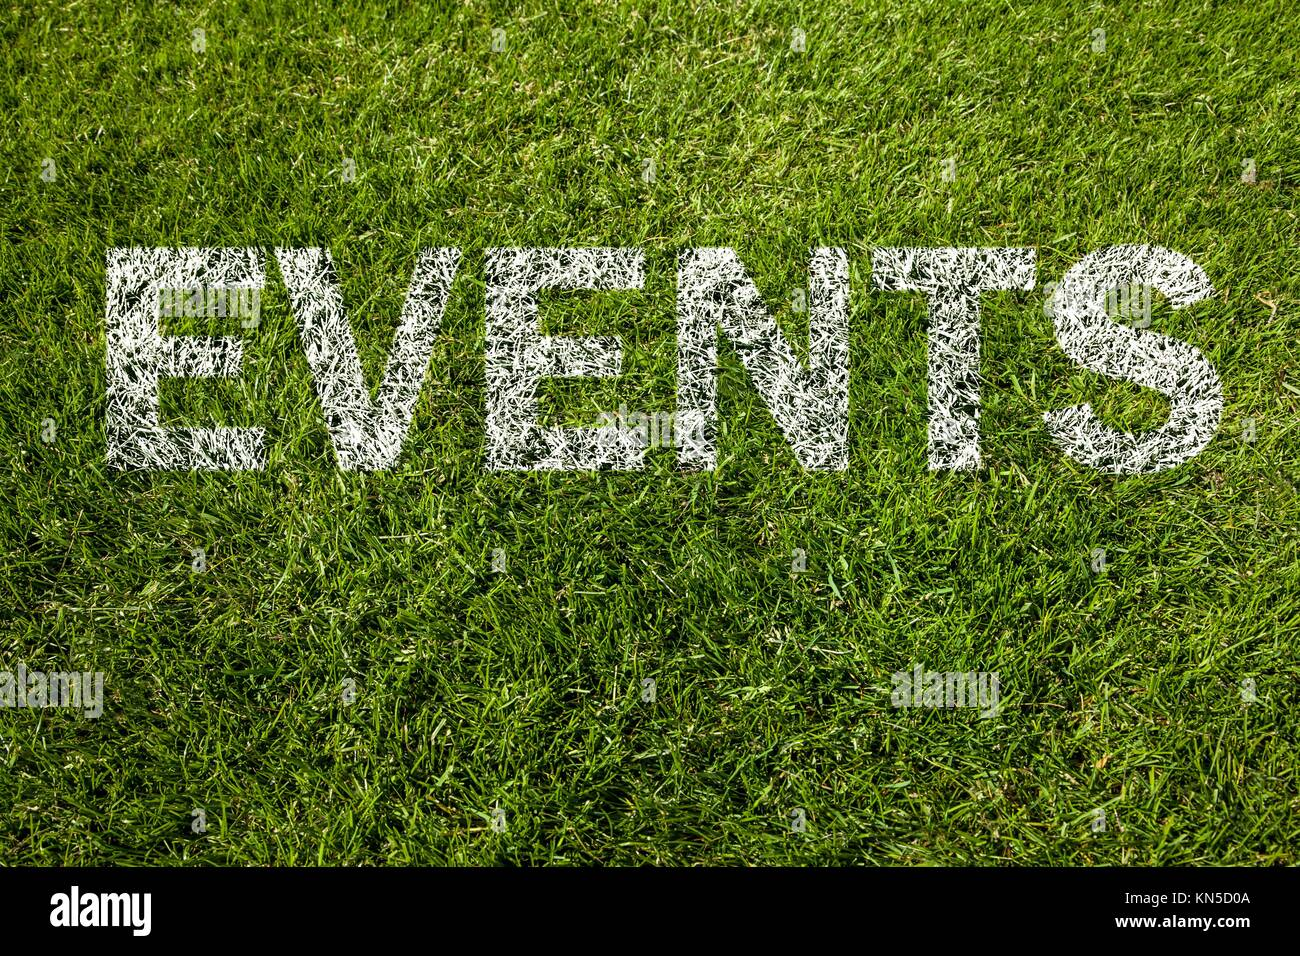 events text written on grass. - Stock Image